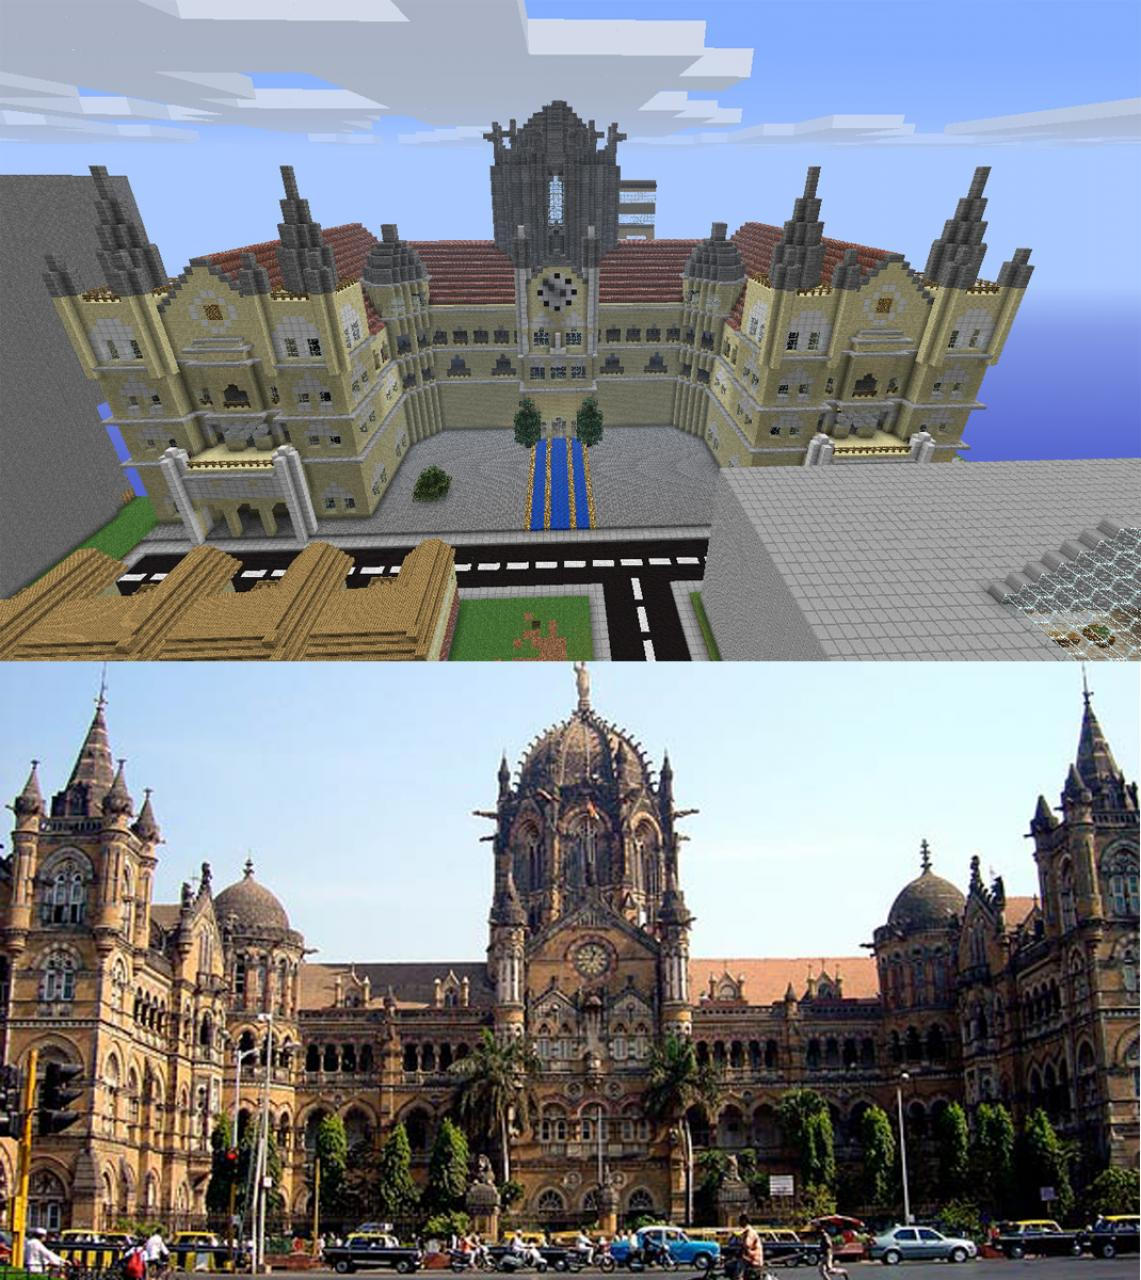 station in real life and in minecraft